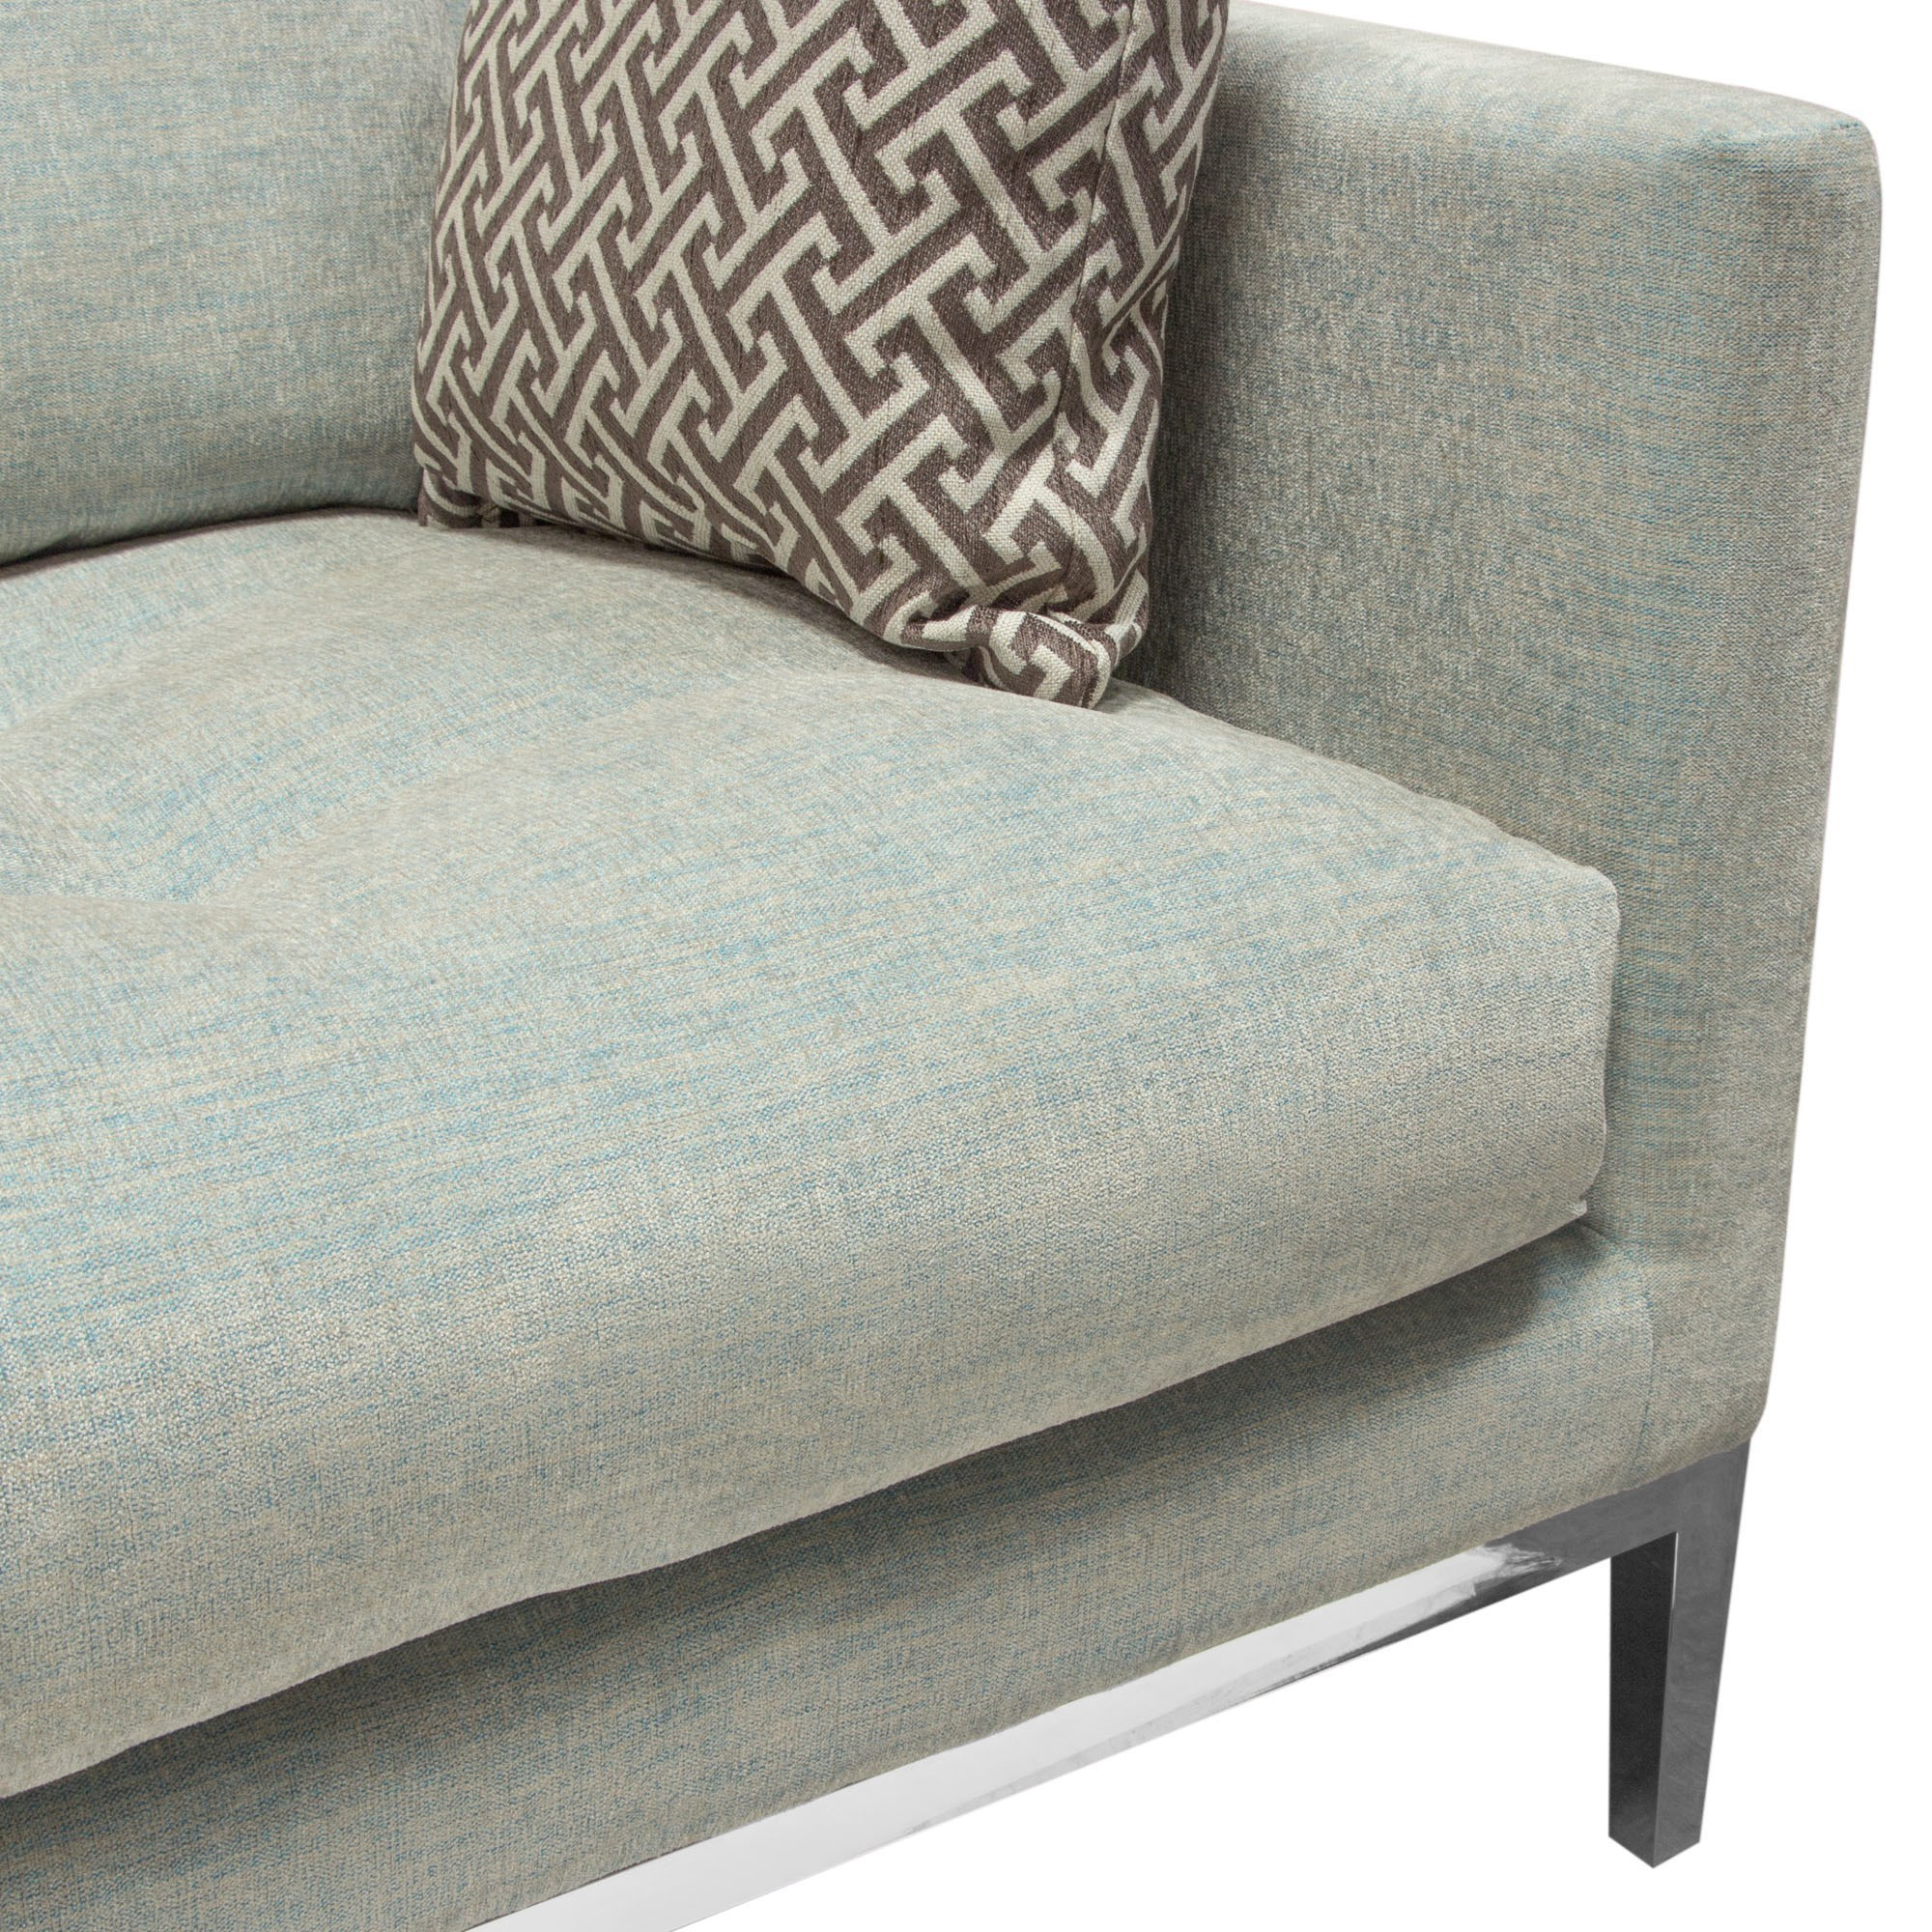 Loose Pillow Back Sofa: Del Sol DS Chateau CHATEAUSLSP Modern Loose Pillow Back